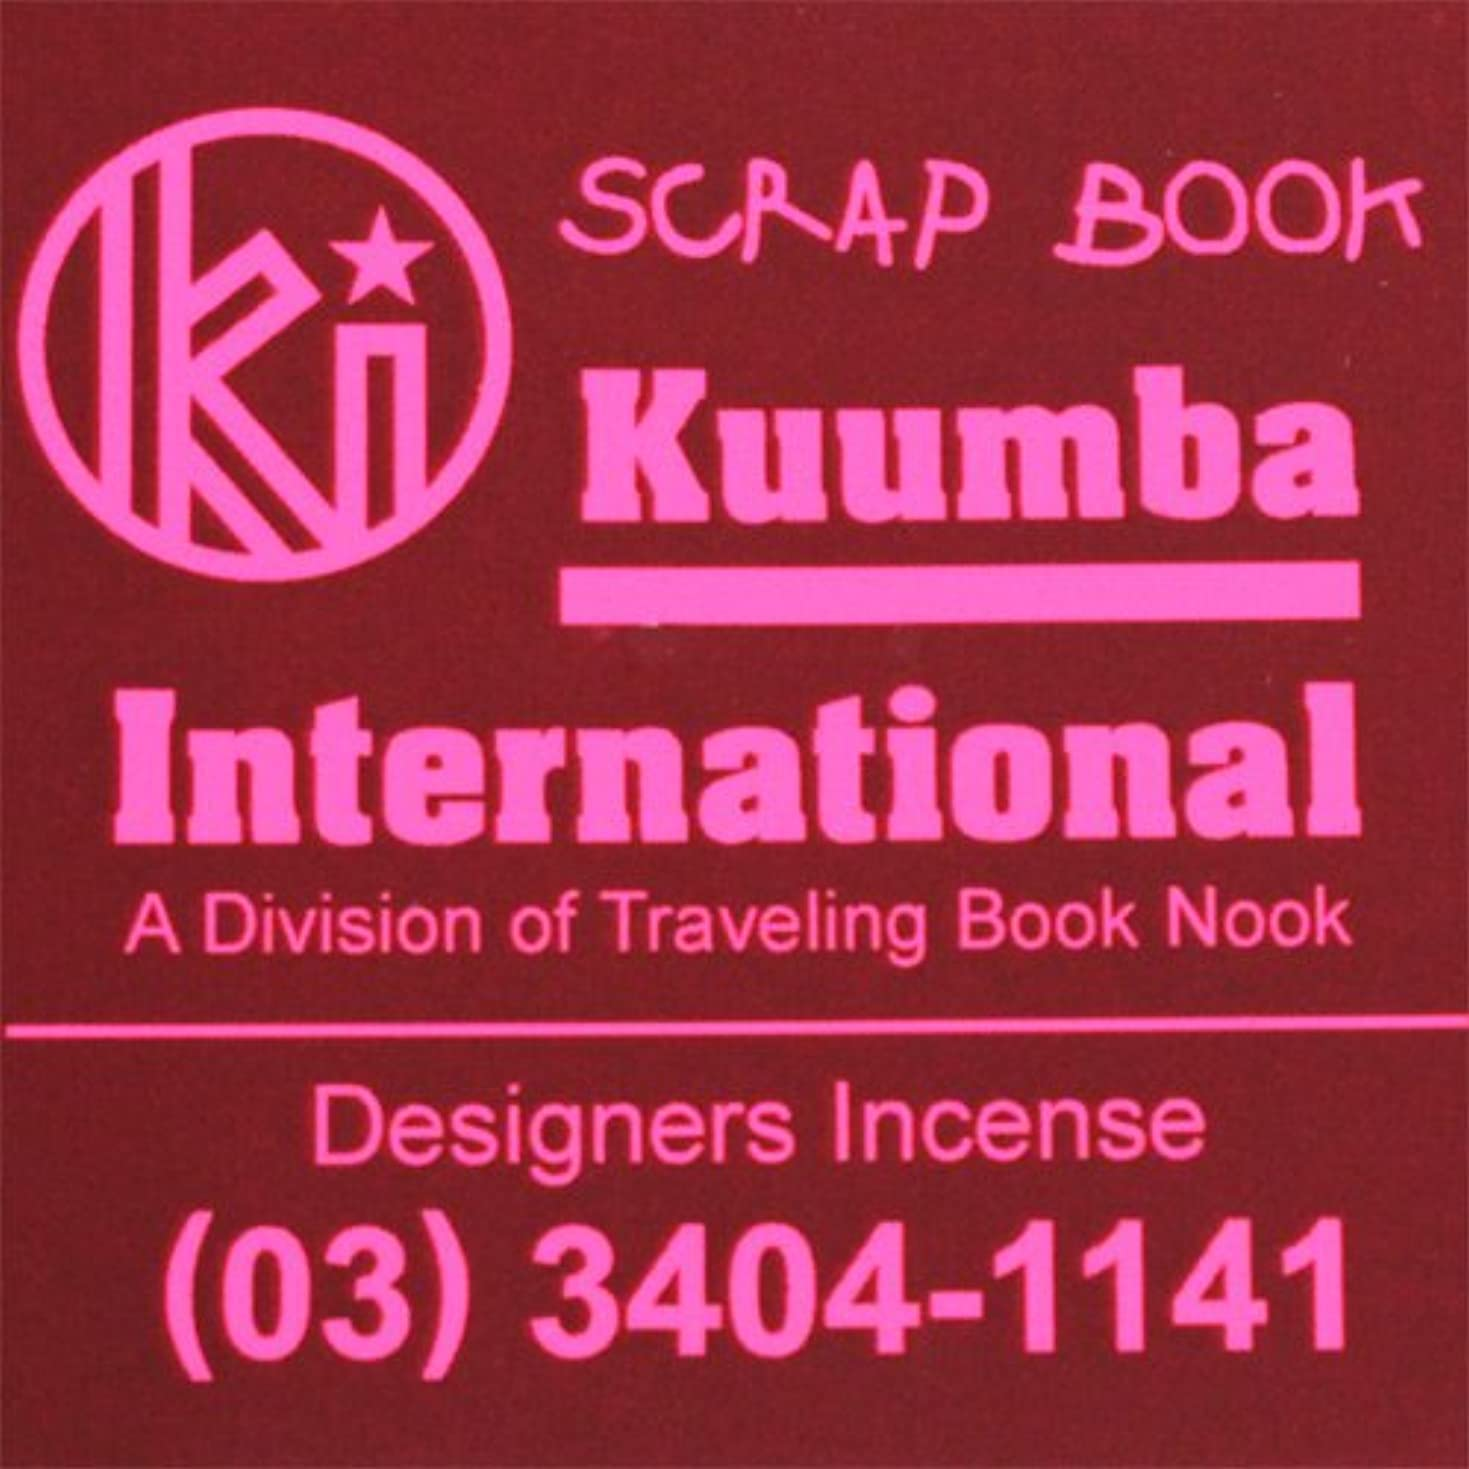 うがい売る美人KUUMBA / クンバ『incense』(SCRAP BOOK) (Regular size)